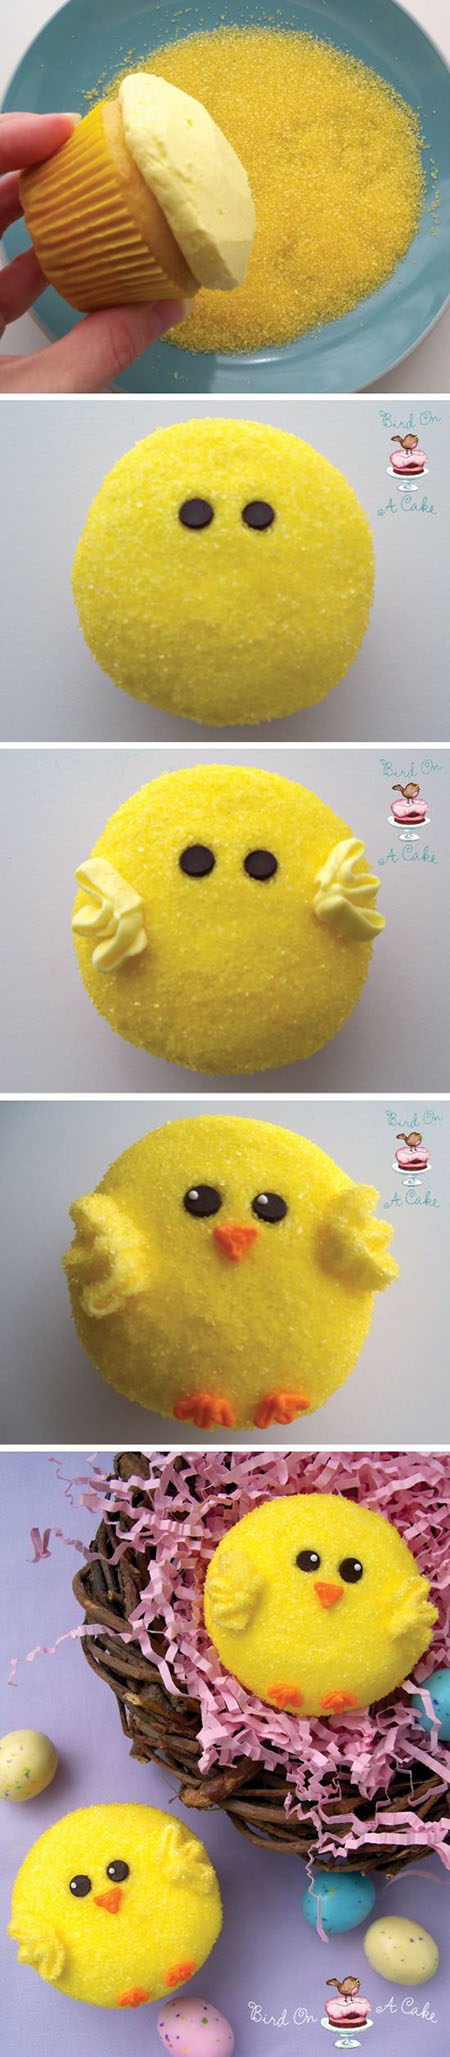 8 Easter Chick Cupcakes 5dca2